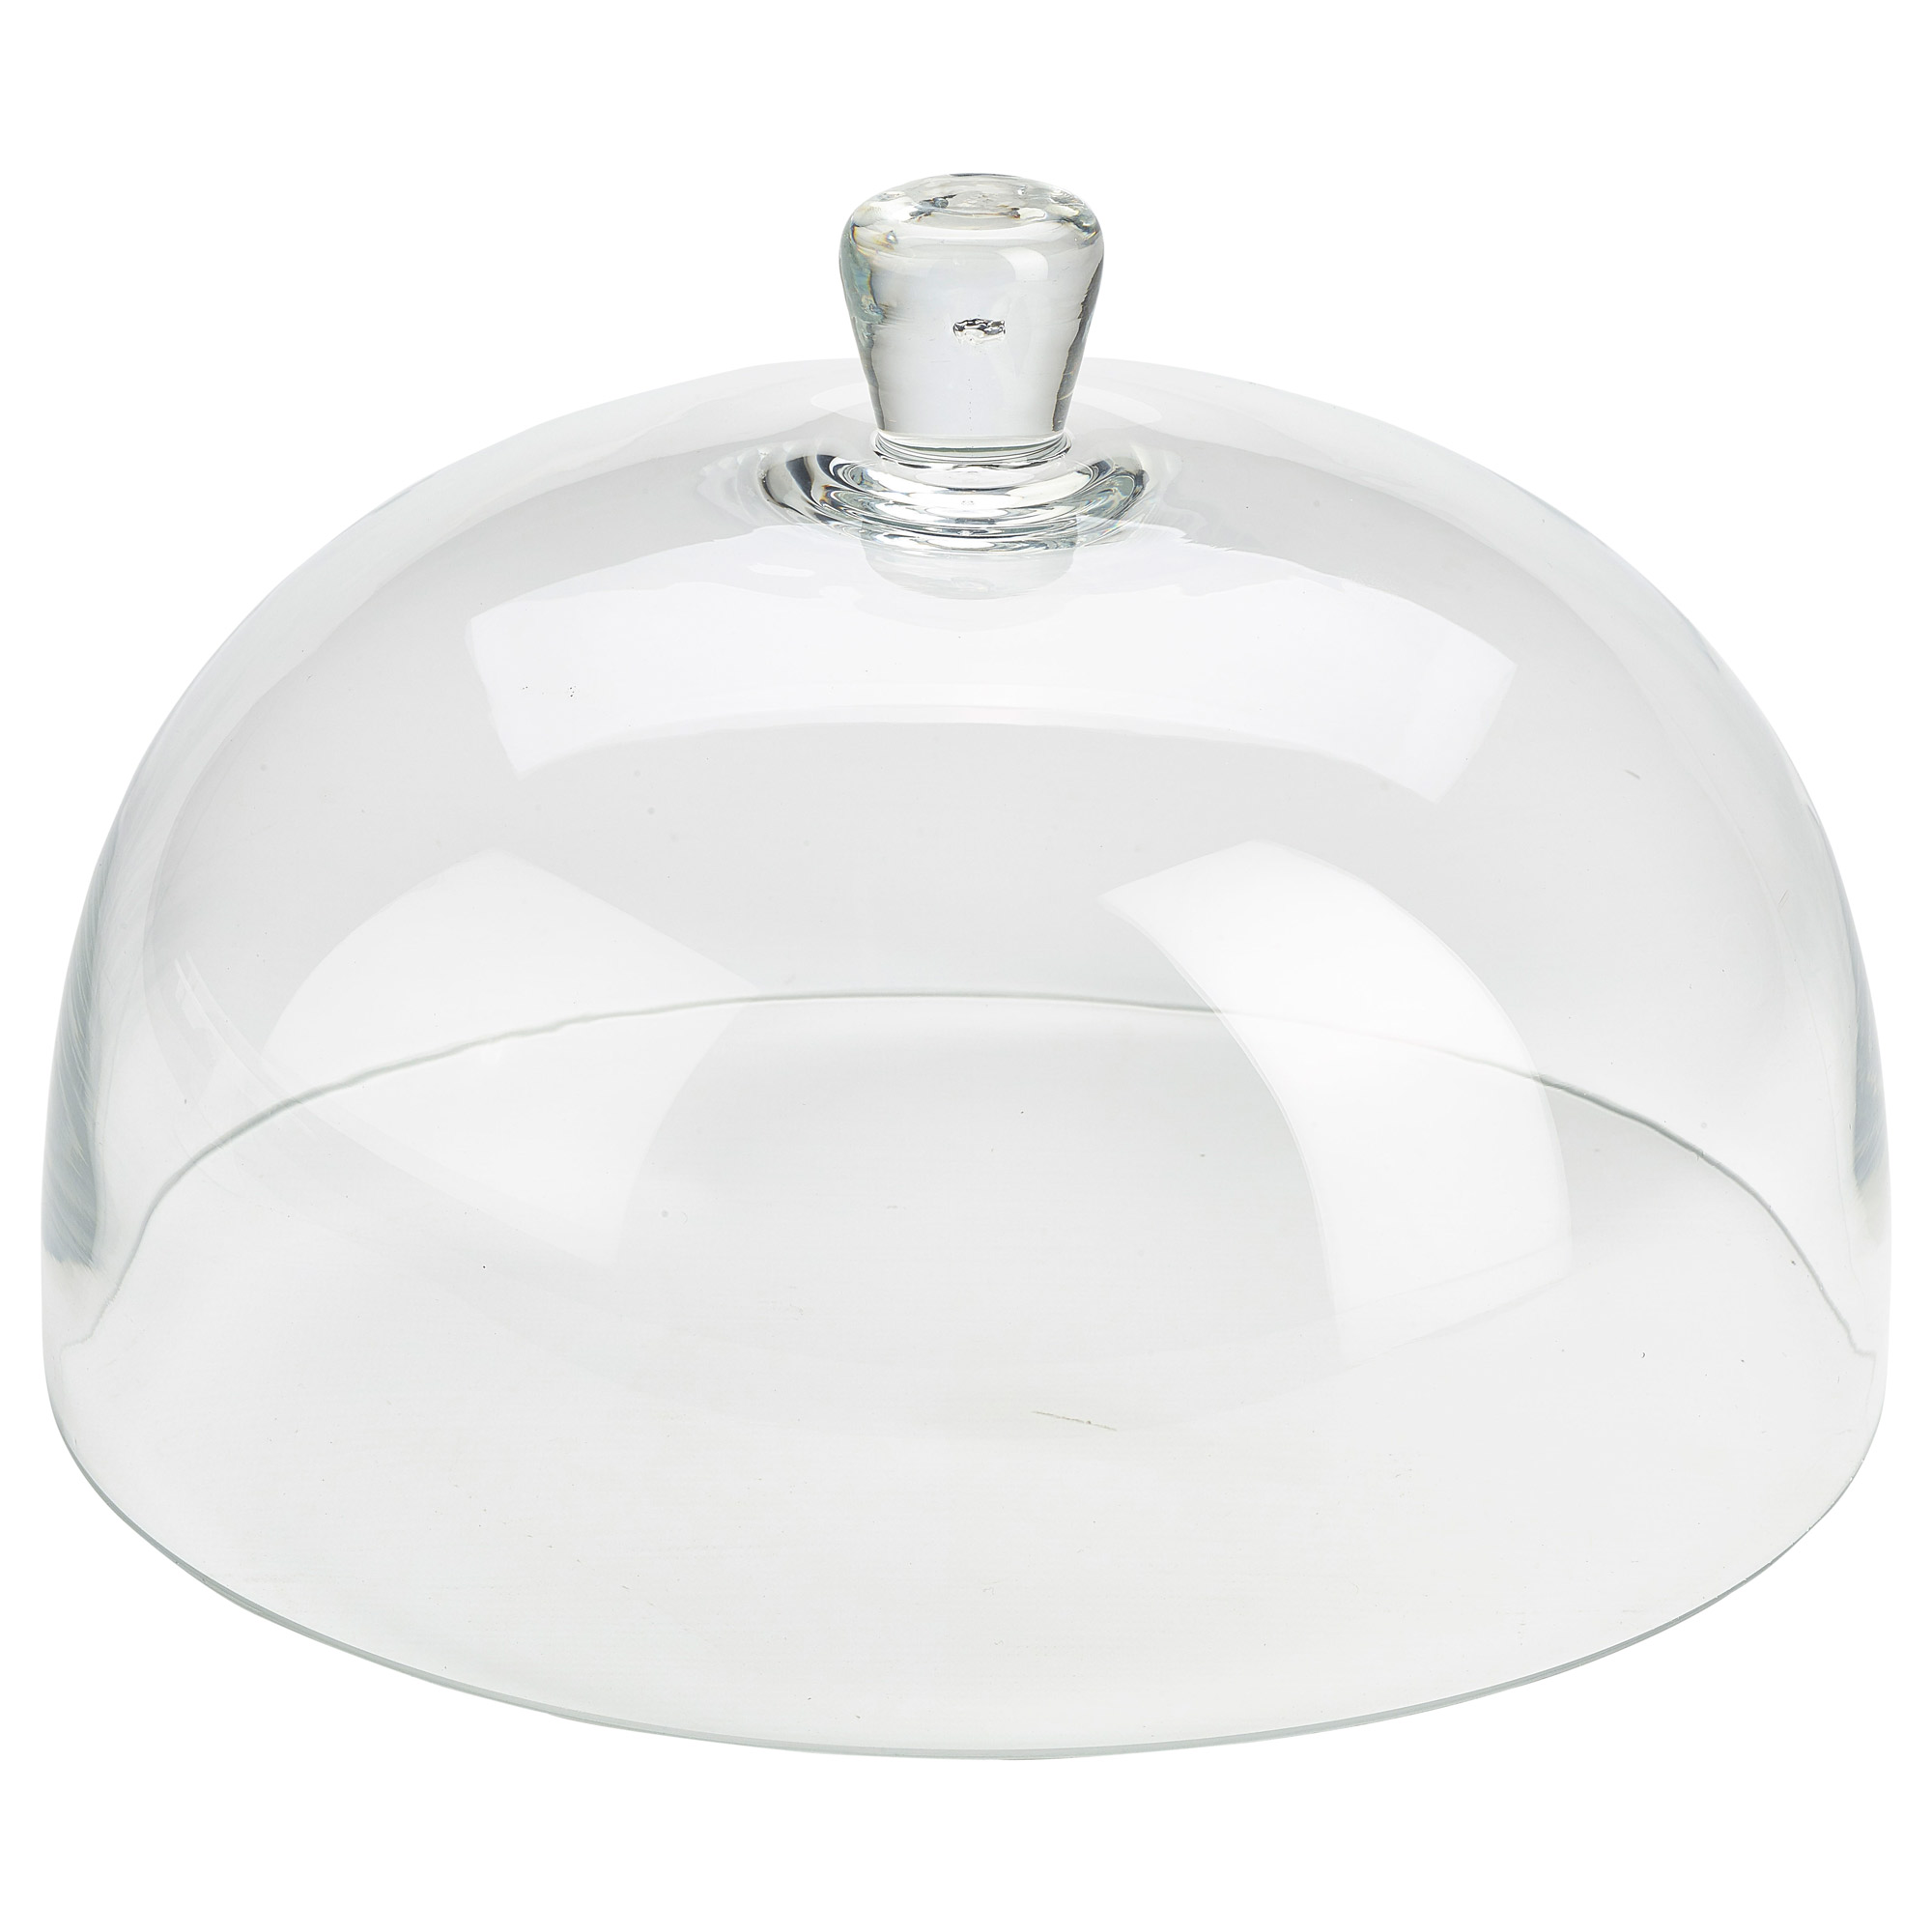 glass cake stand with dome genware 12 inch 30cm glass cake dome at drinkstuff 4509